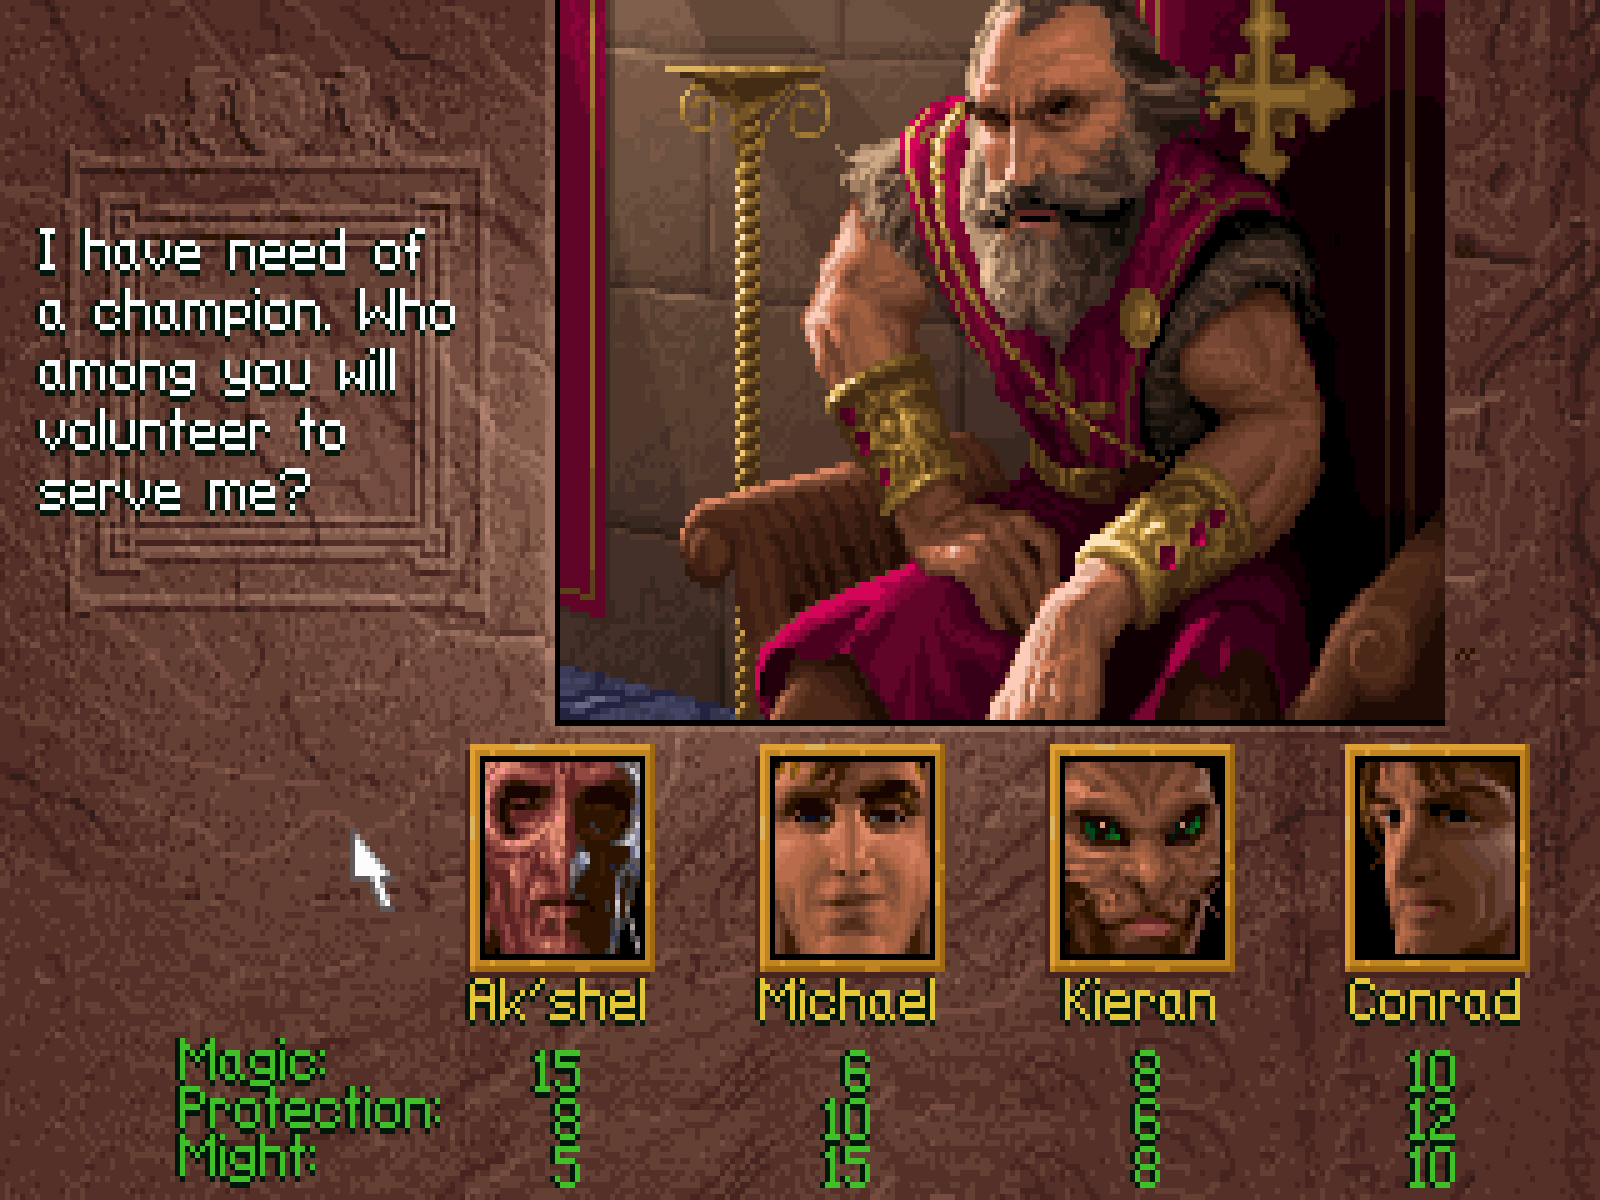 1993 – Lands of Lore: The Throne of Chaos | The CRPG Book Project